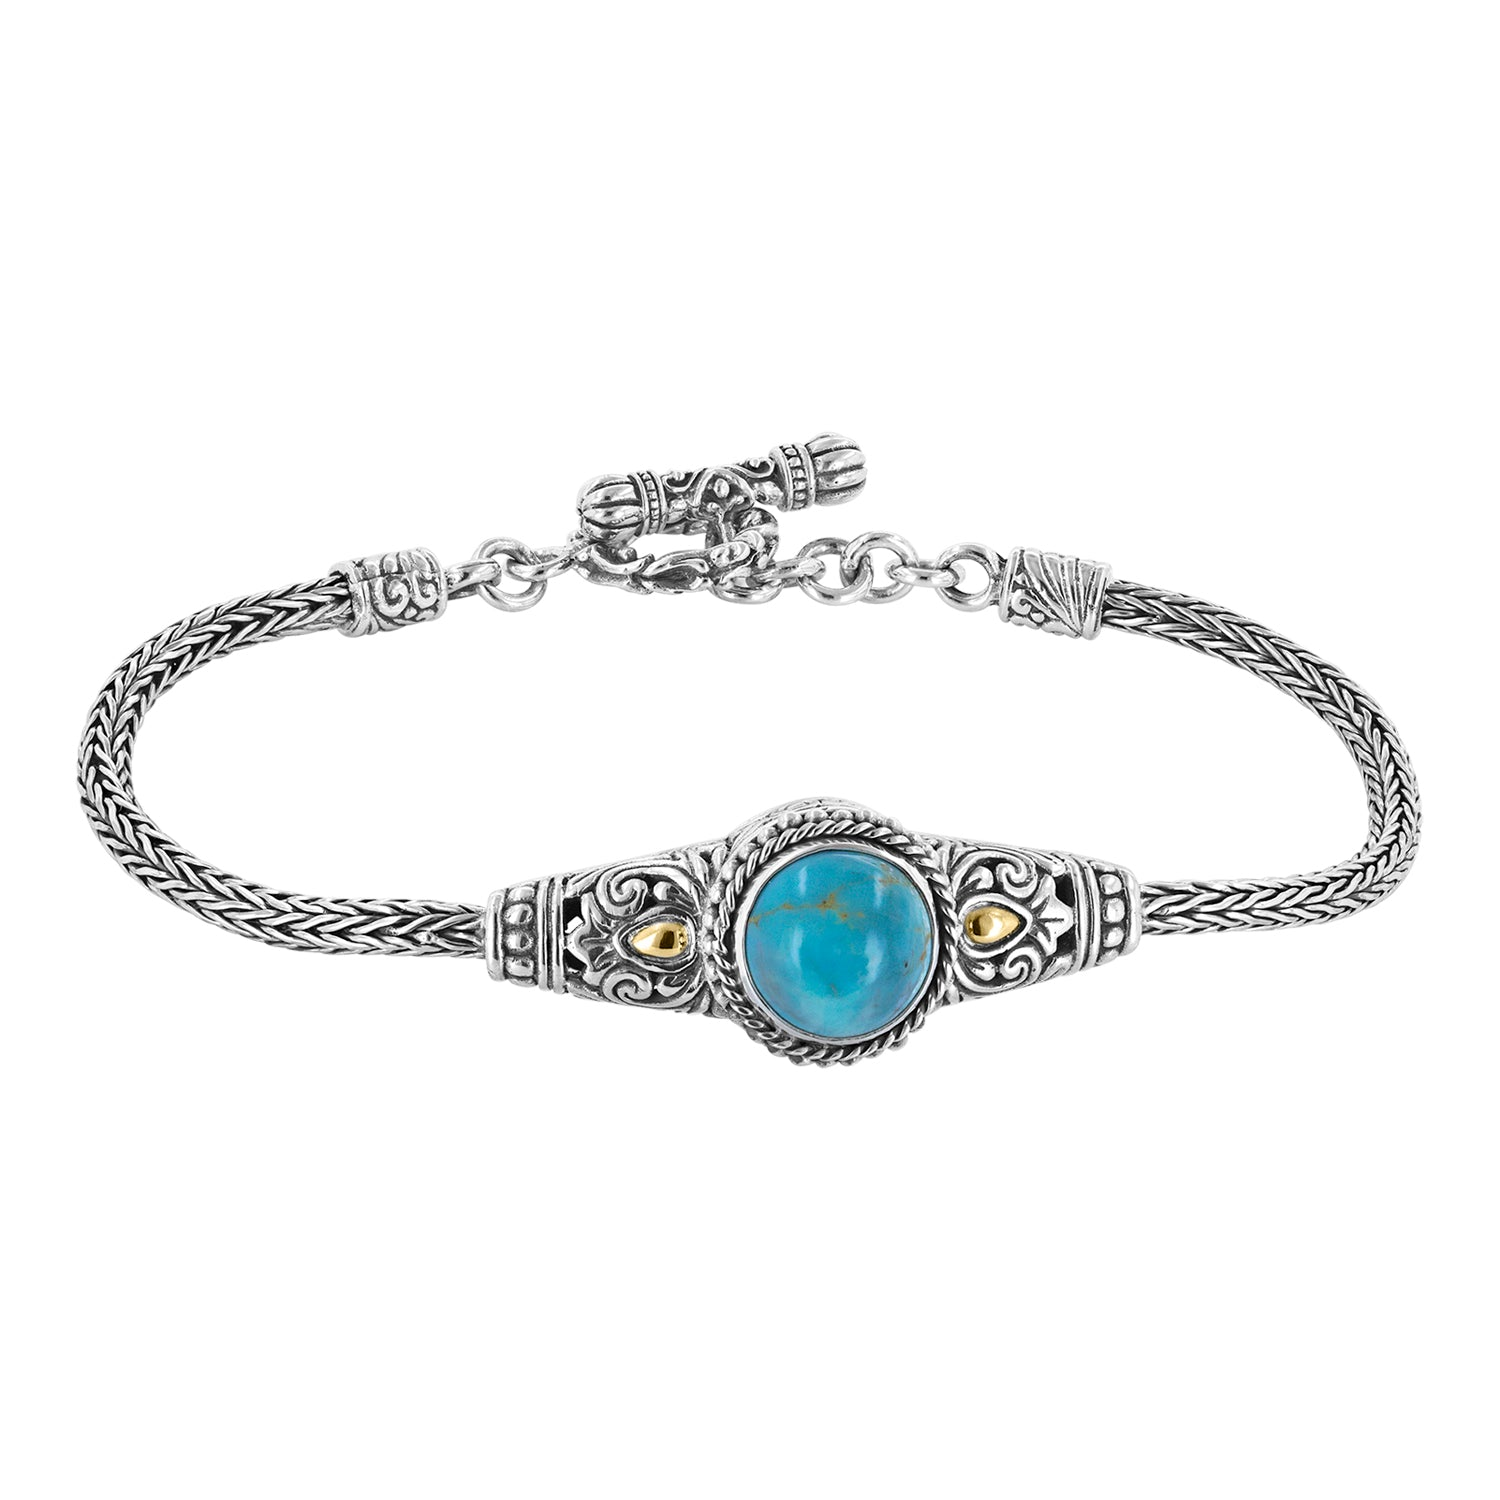 Bali Turquoise Scroll and Weave Band Toggle Bracelet